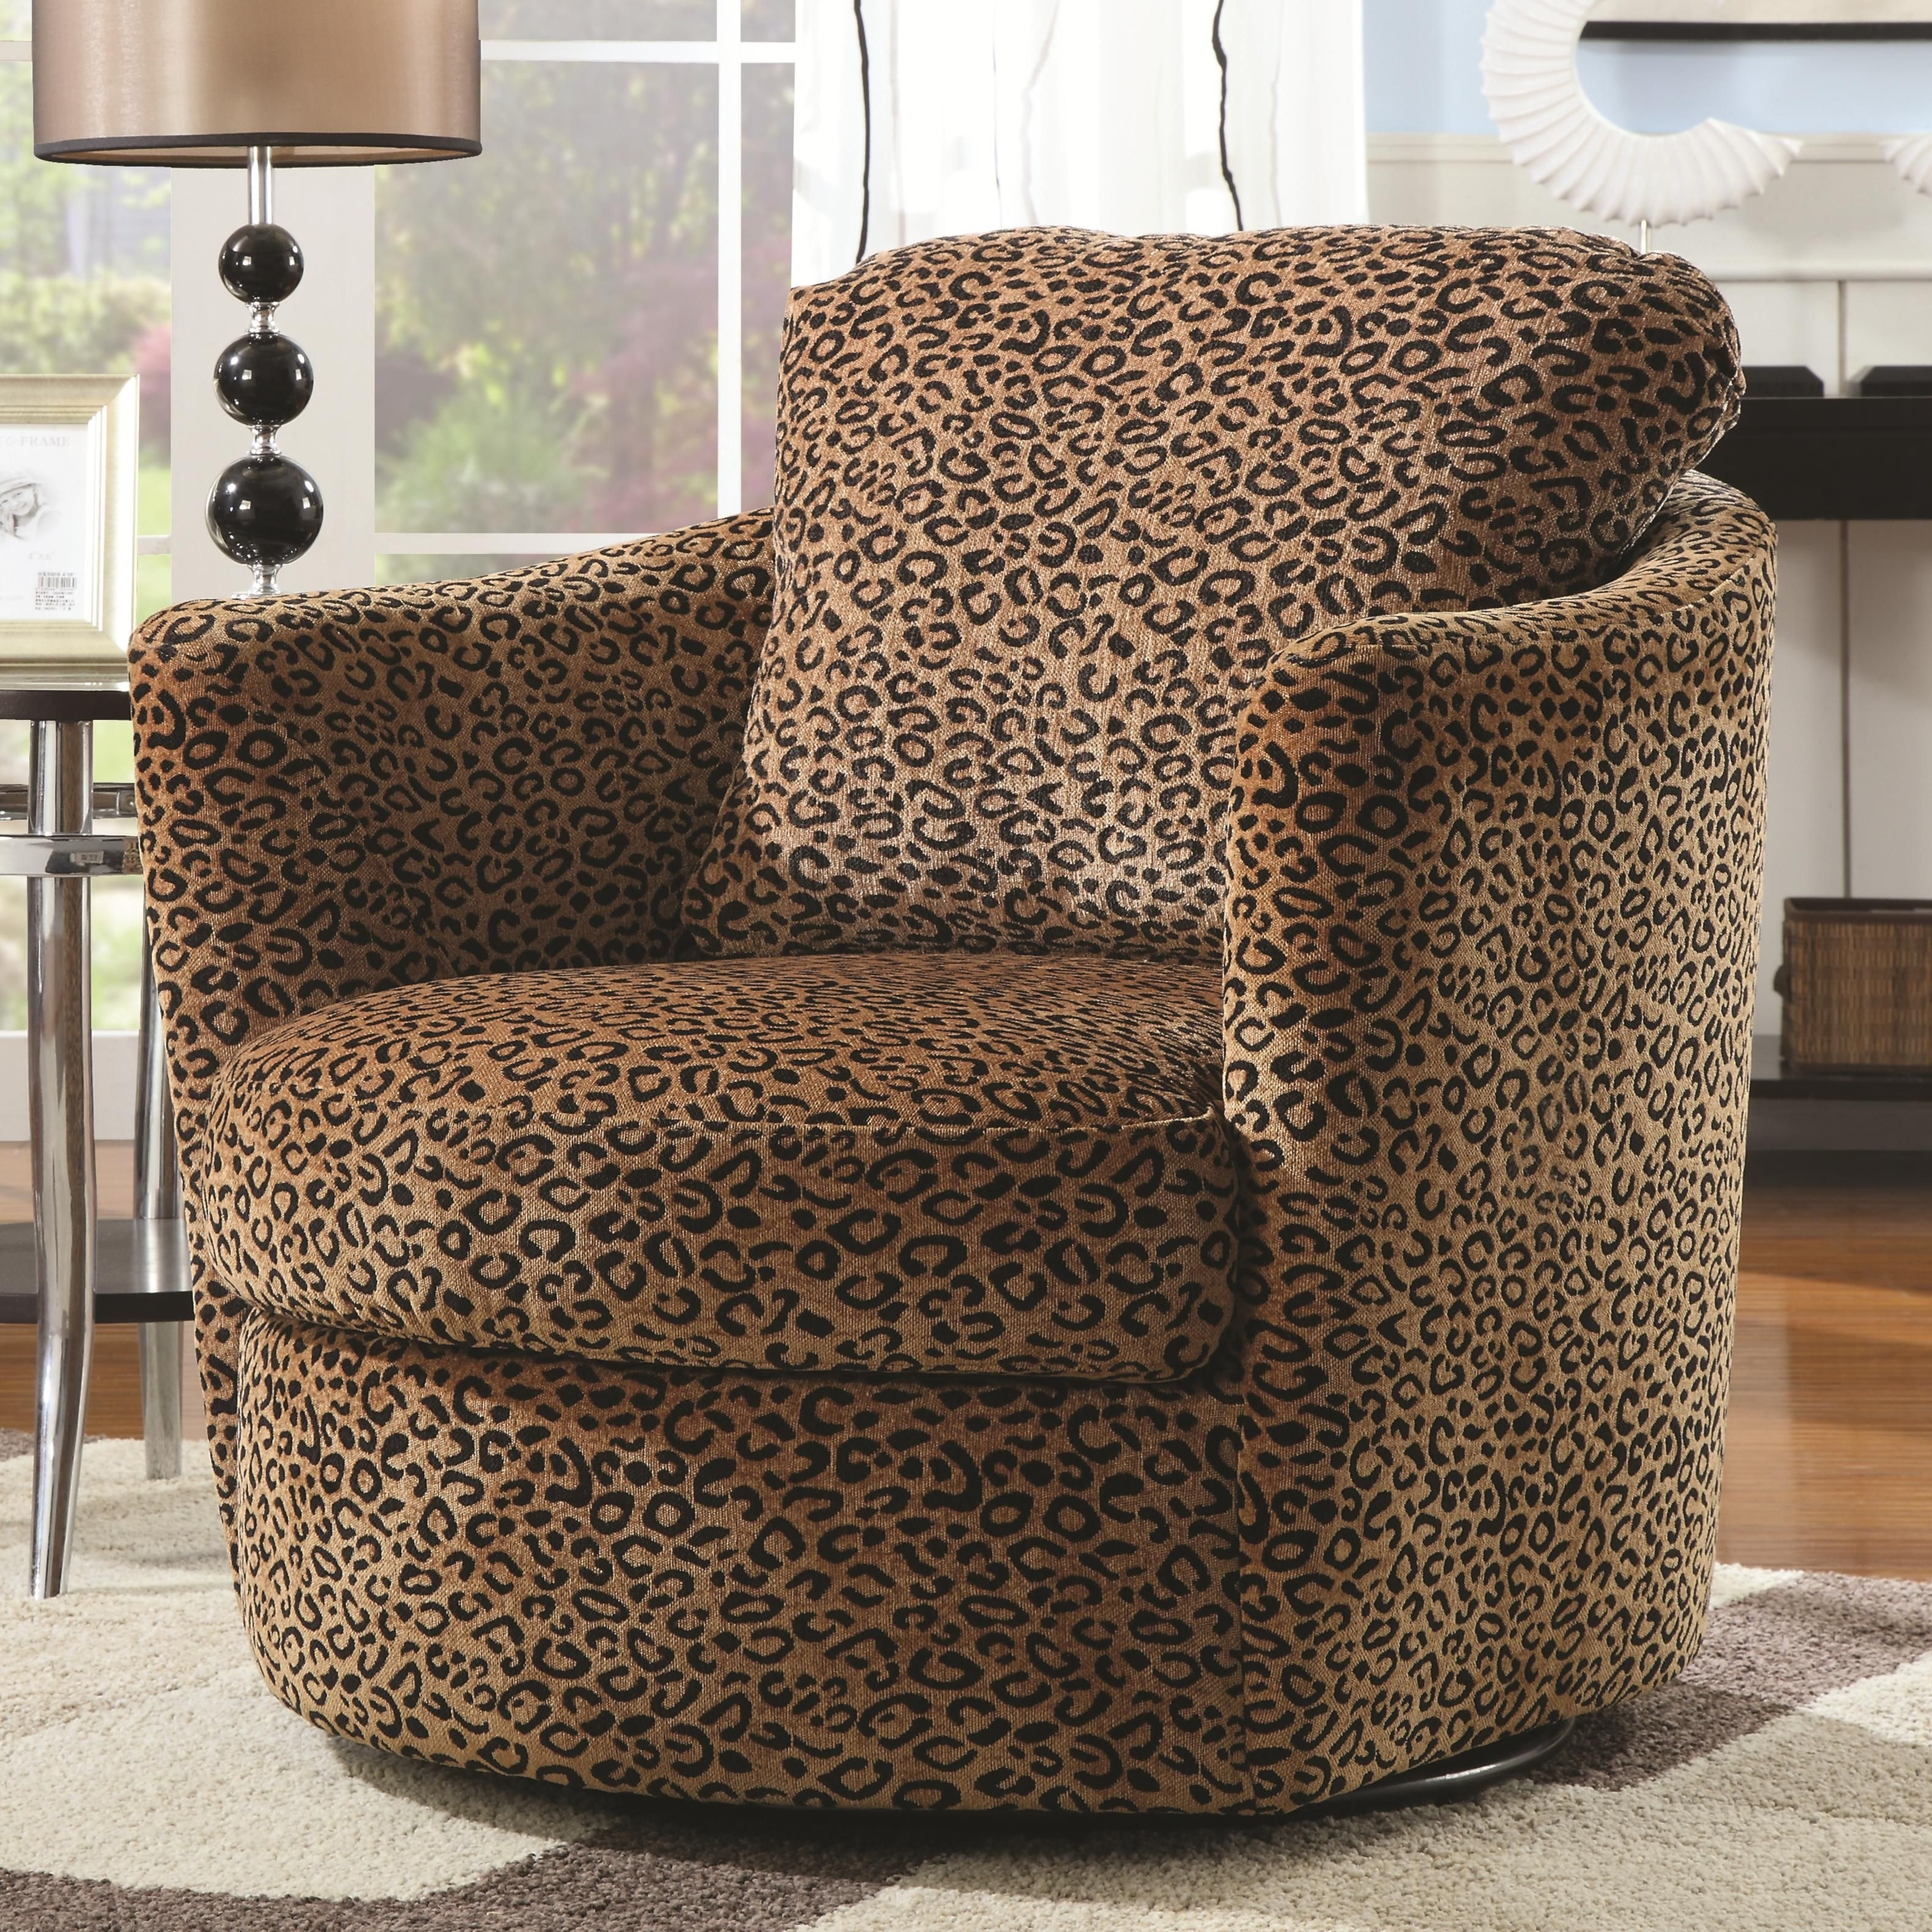 Charmant Cheetah Print Accent Chairs   Ideas On Foter